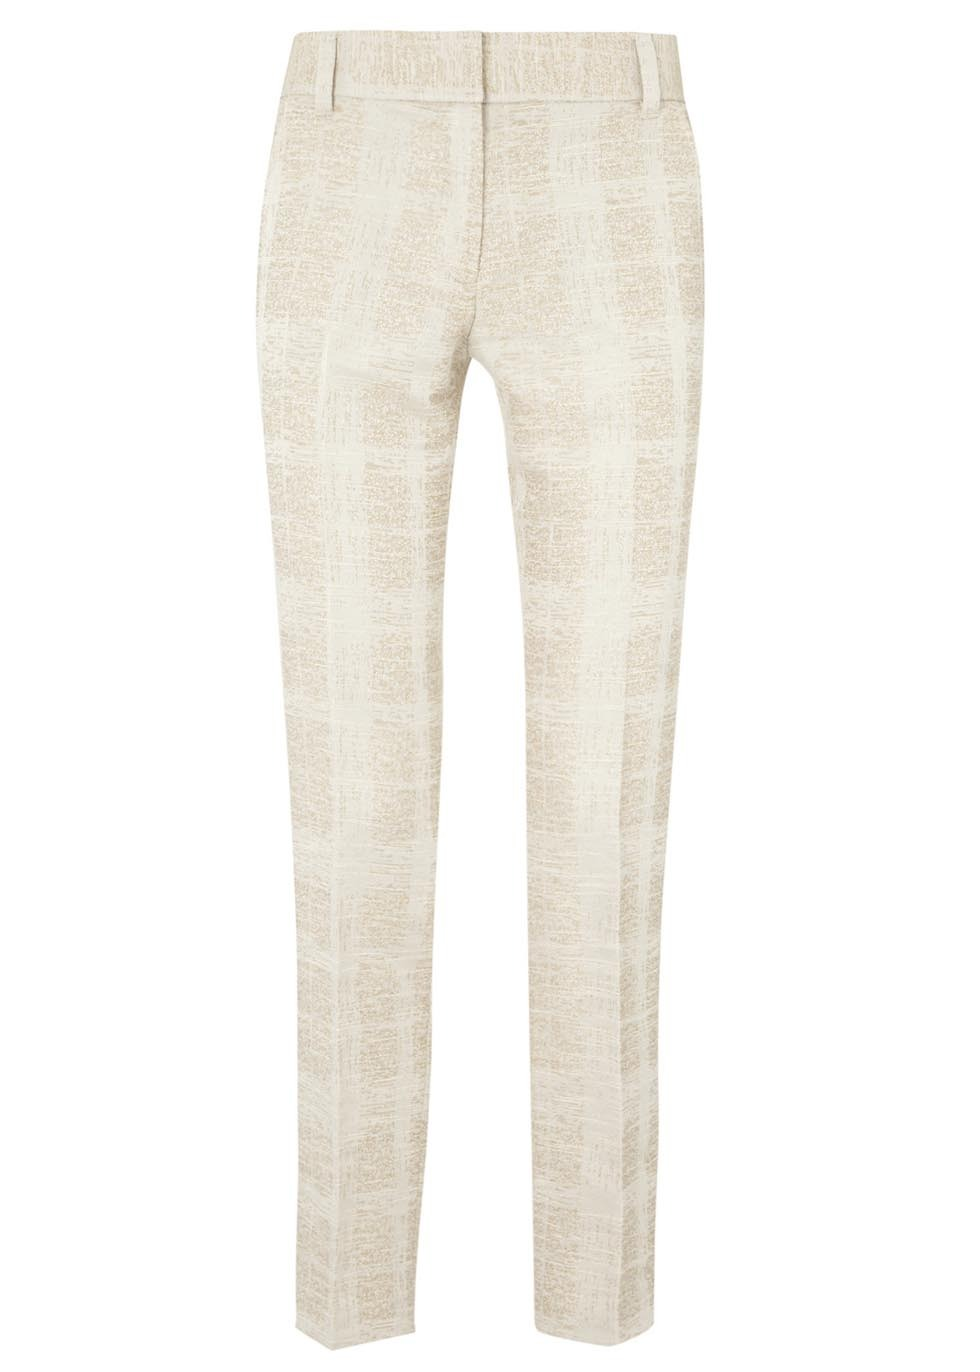 Harp Cream Check Tweed Trousers - length: standard; pattern: plain; waist: mid/regular rise; predominant colour: ivory/cream; secondary colour: stone; occasions: evening, creative work; fibres: polyester/polyamide - mix; fit: straight leg; texture group: tweed - light/midweight; style: standard; season: s/s 2014